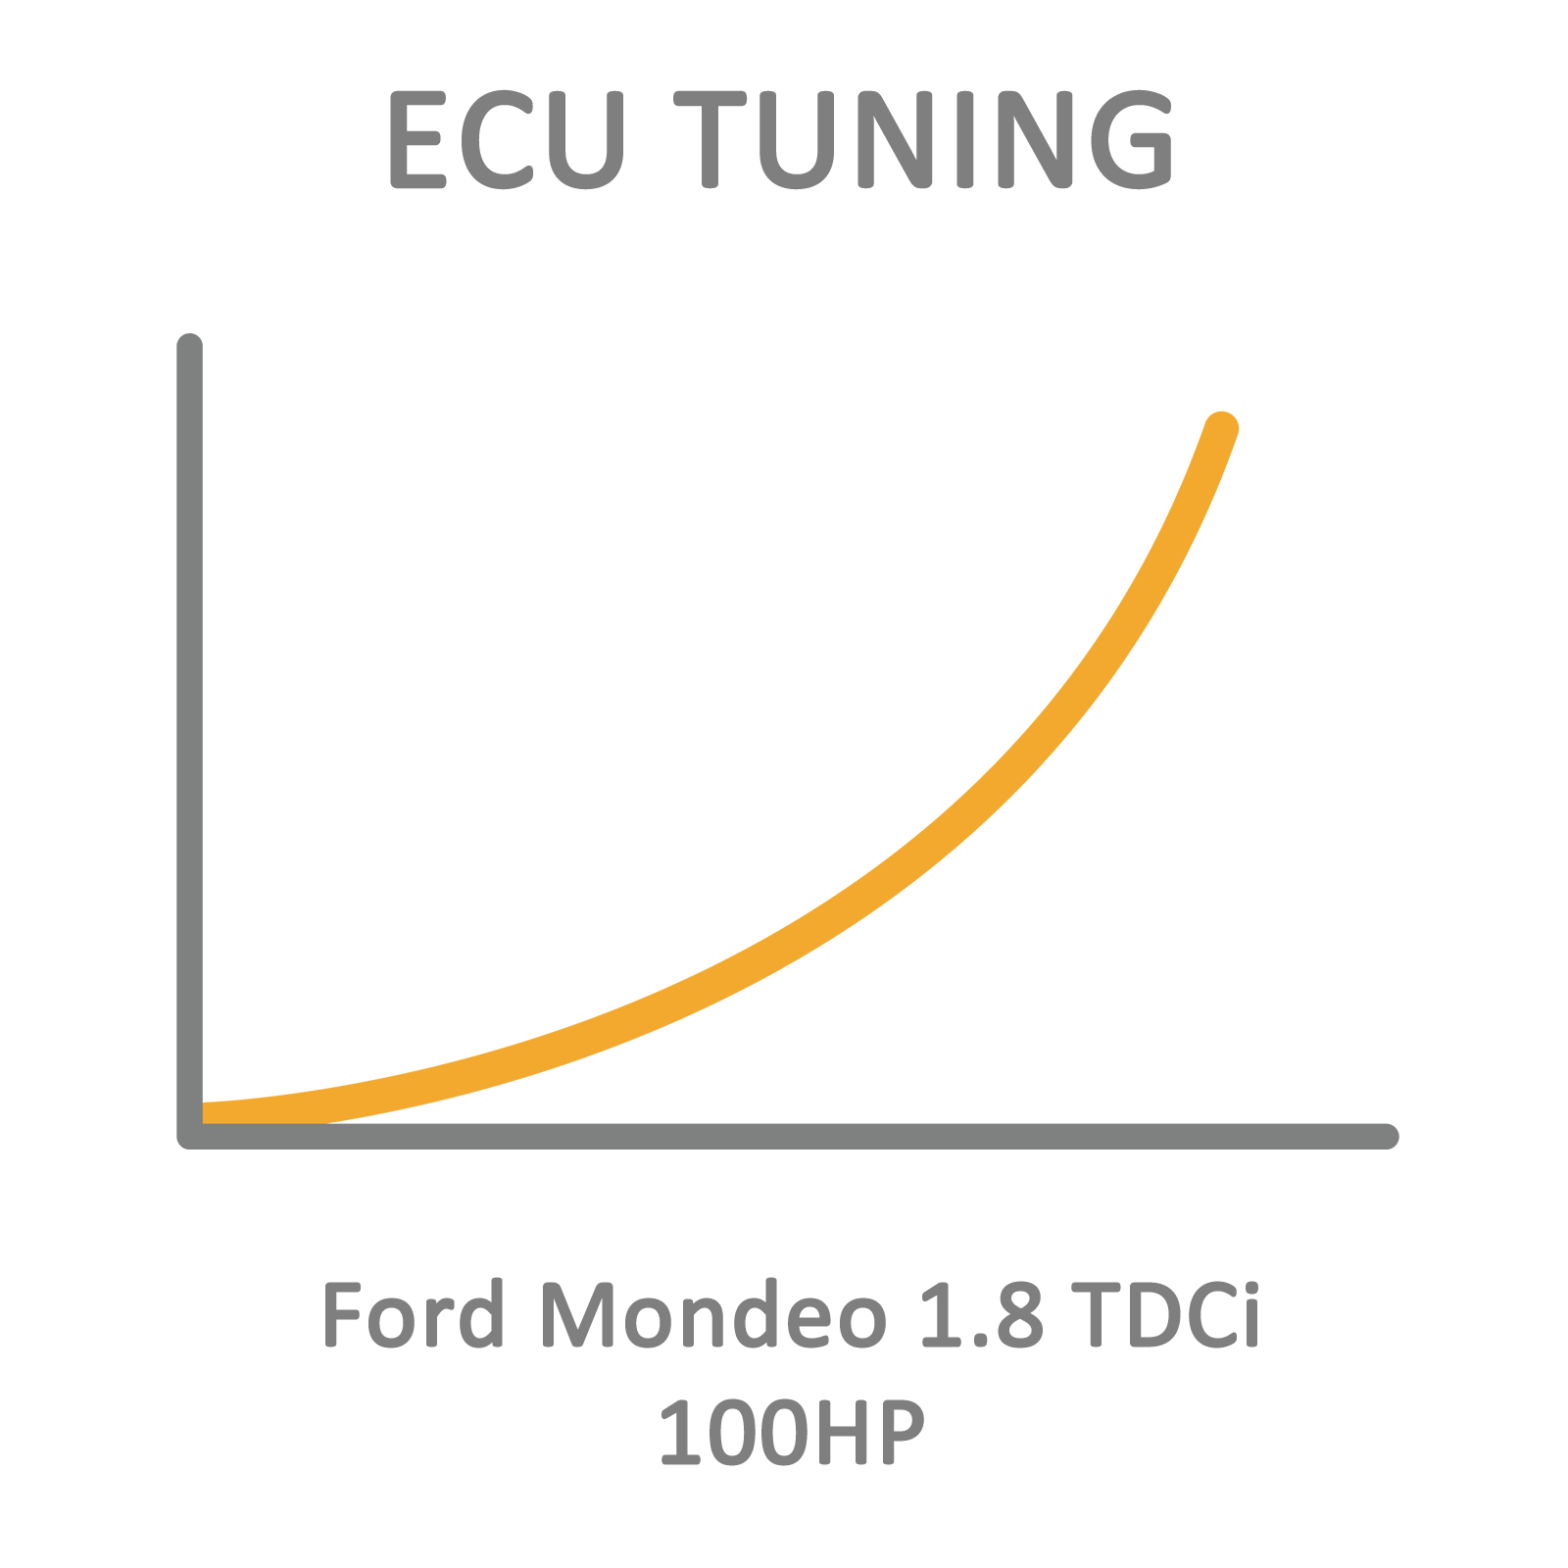 Ford Mondeo 1.8 TDCi 100HP ECU Tuning Remapping Programming